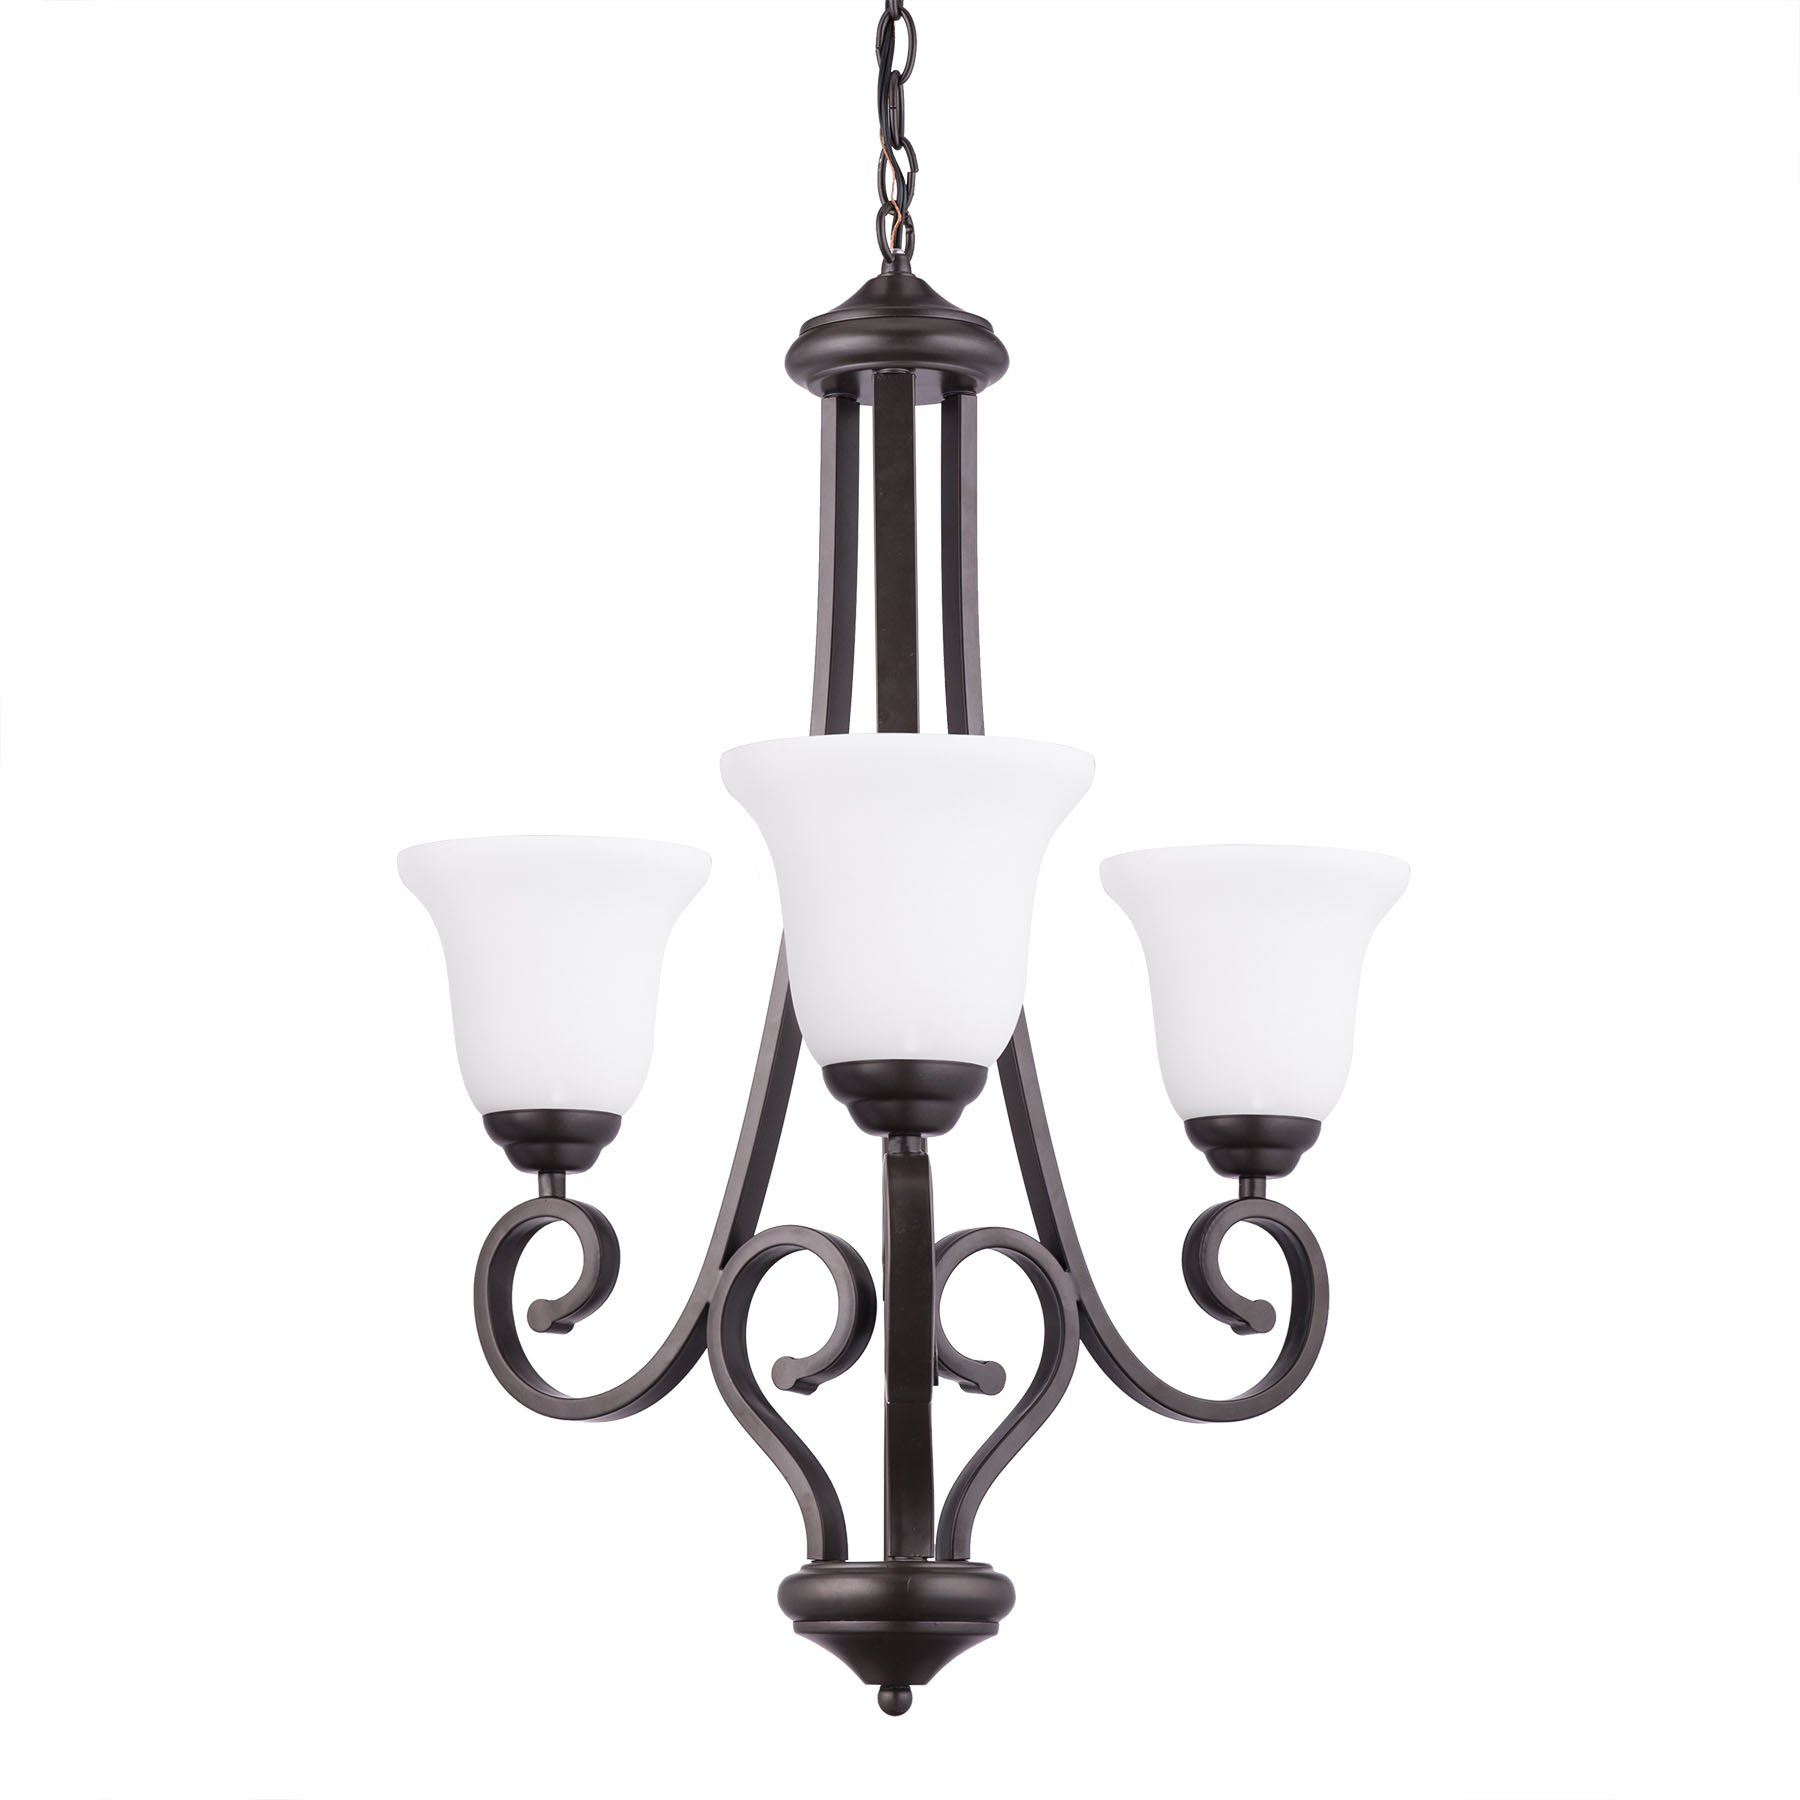 CO-Z Oil Rubbed Antique Bronze 3-Light Chandelier, 3 Light Ceiling Lighting Fixture with Satin Etched Cased Opal Glass Shade, Hanging Pendant Light for Living Room Dining Room Foyer Hallway Bedroom